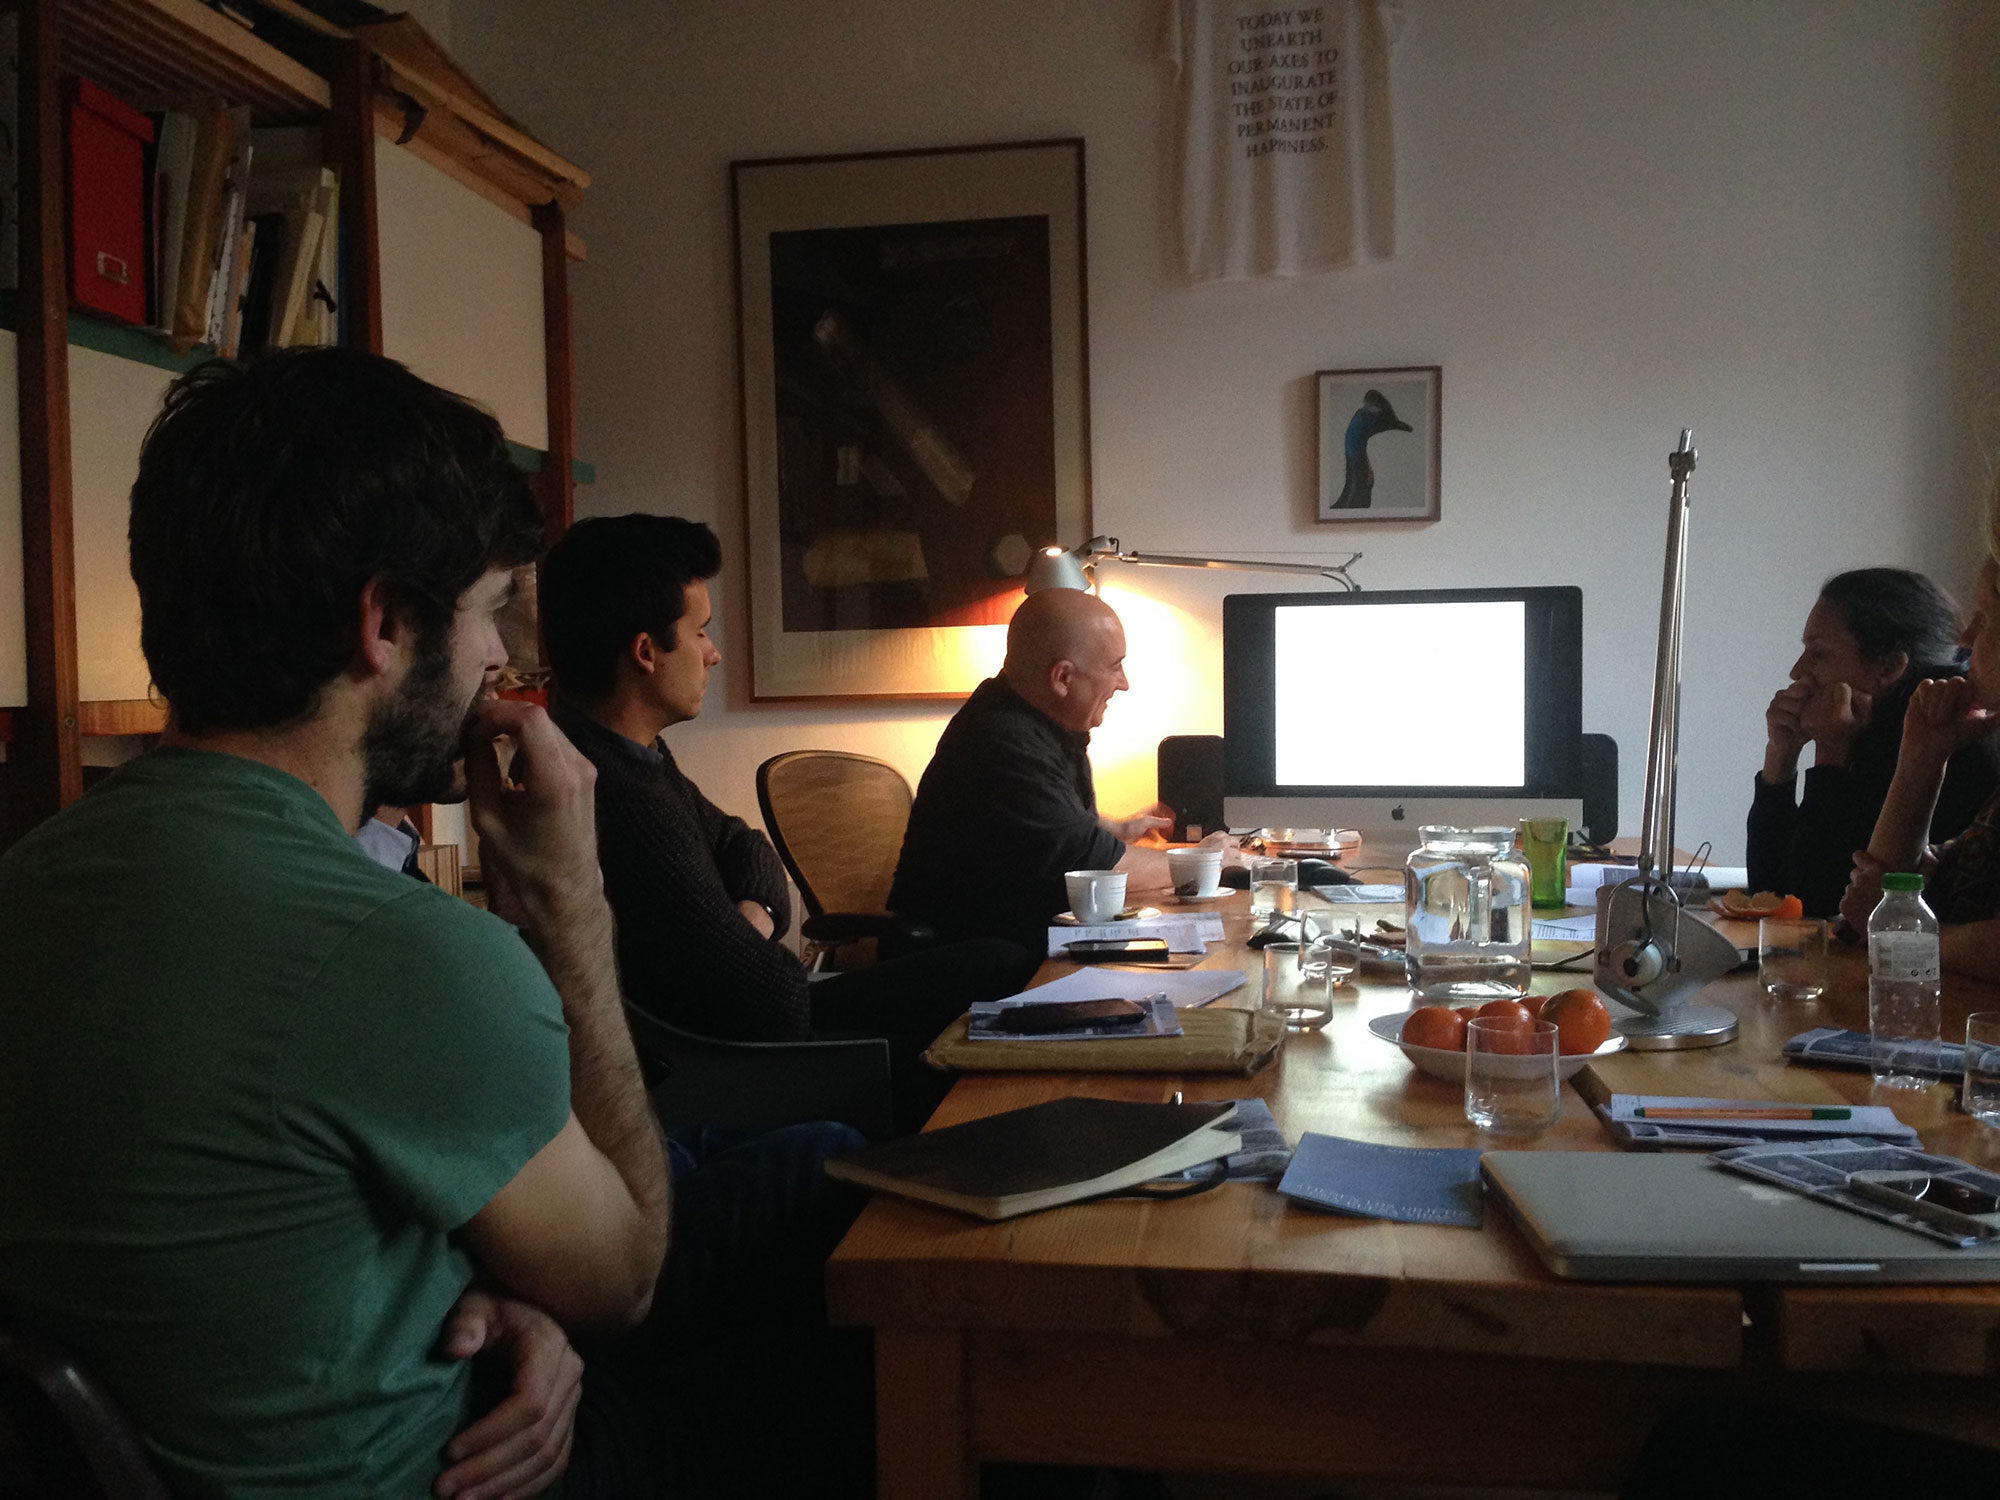 RE-MAKE / RE-MODEL: A CURATORIAL GATHERING